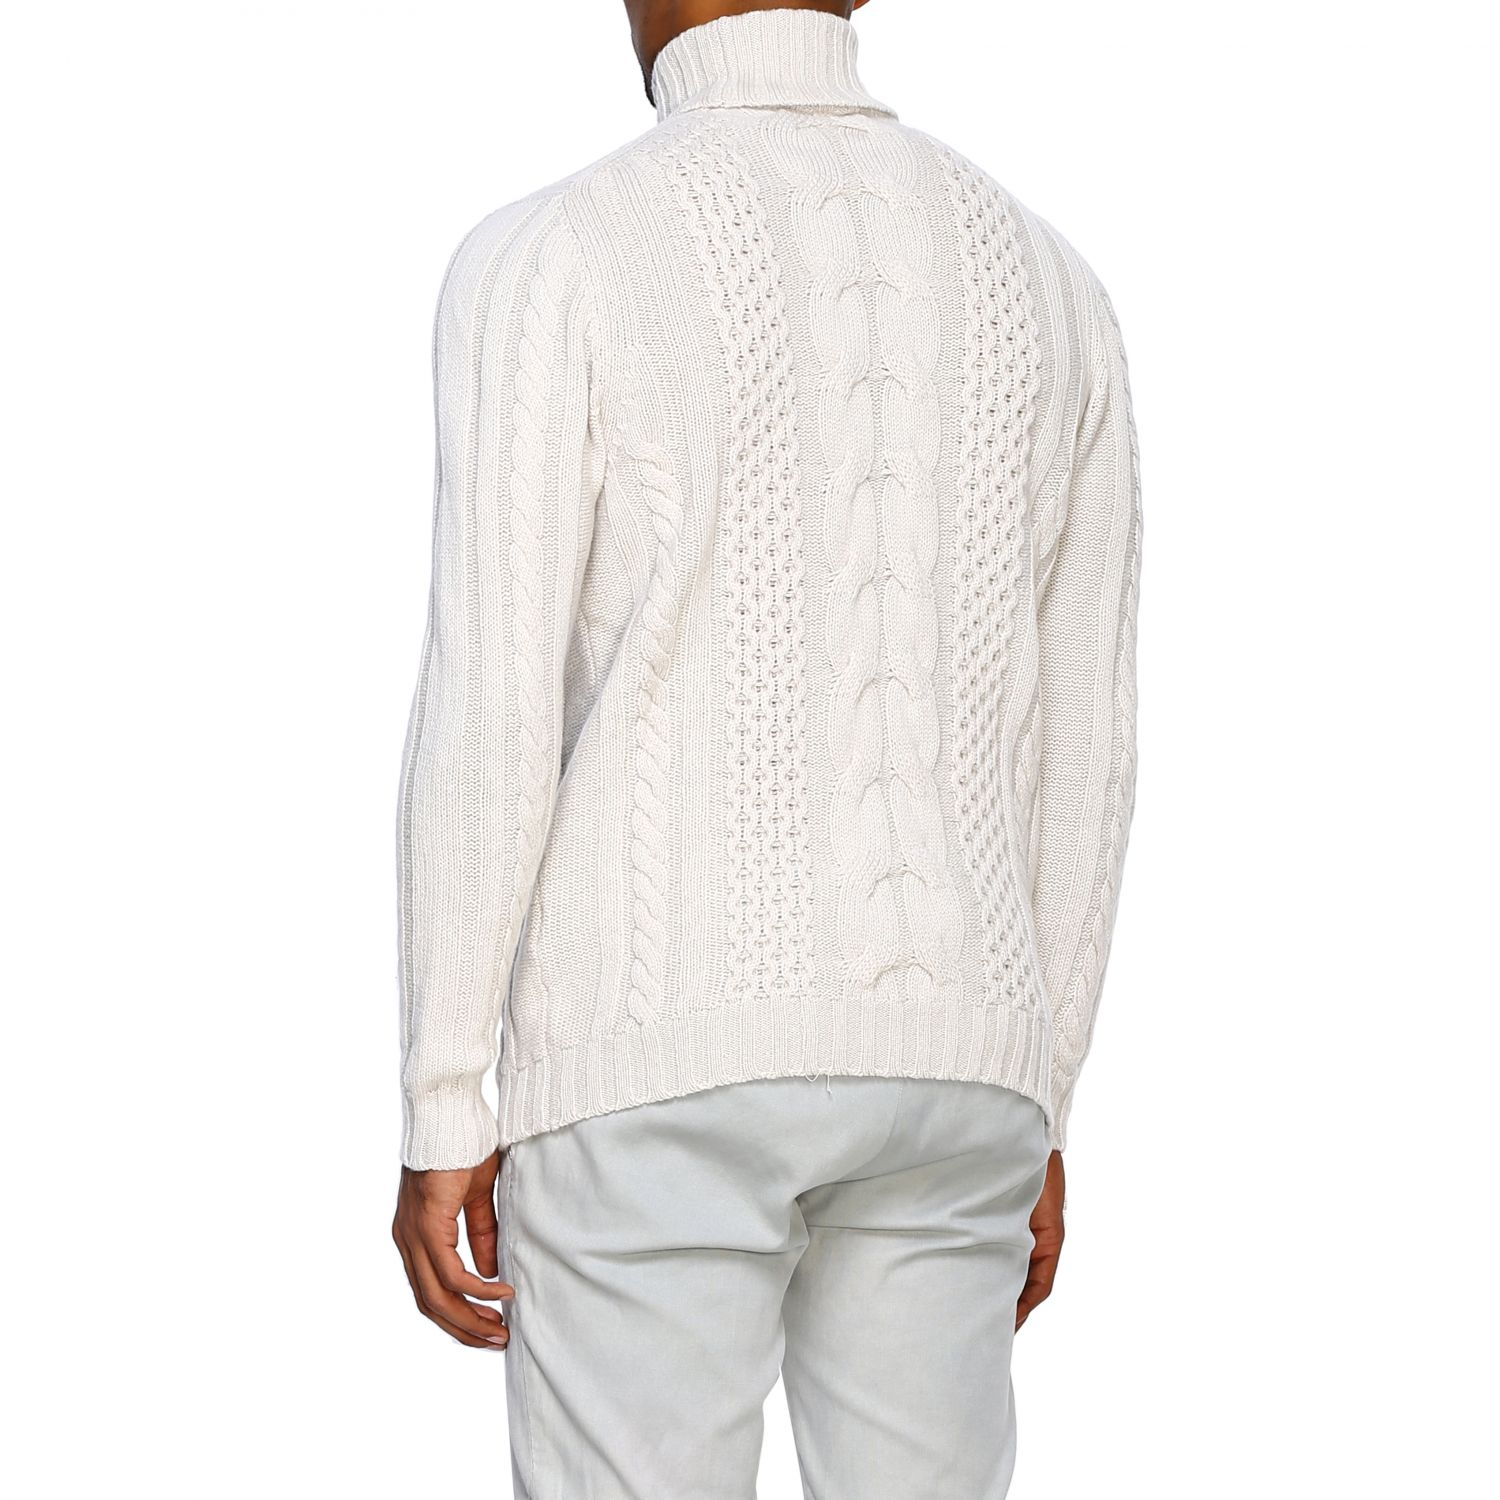 Jumper Alpha Studio: Jumper men Alpha Studio white 3